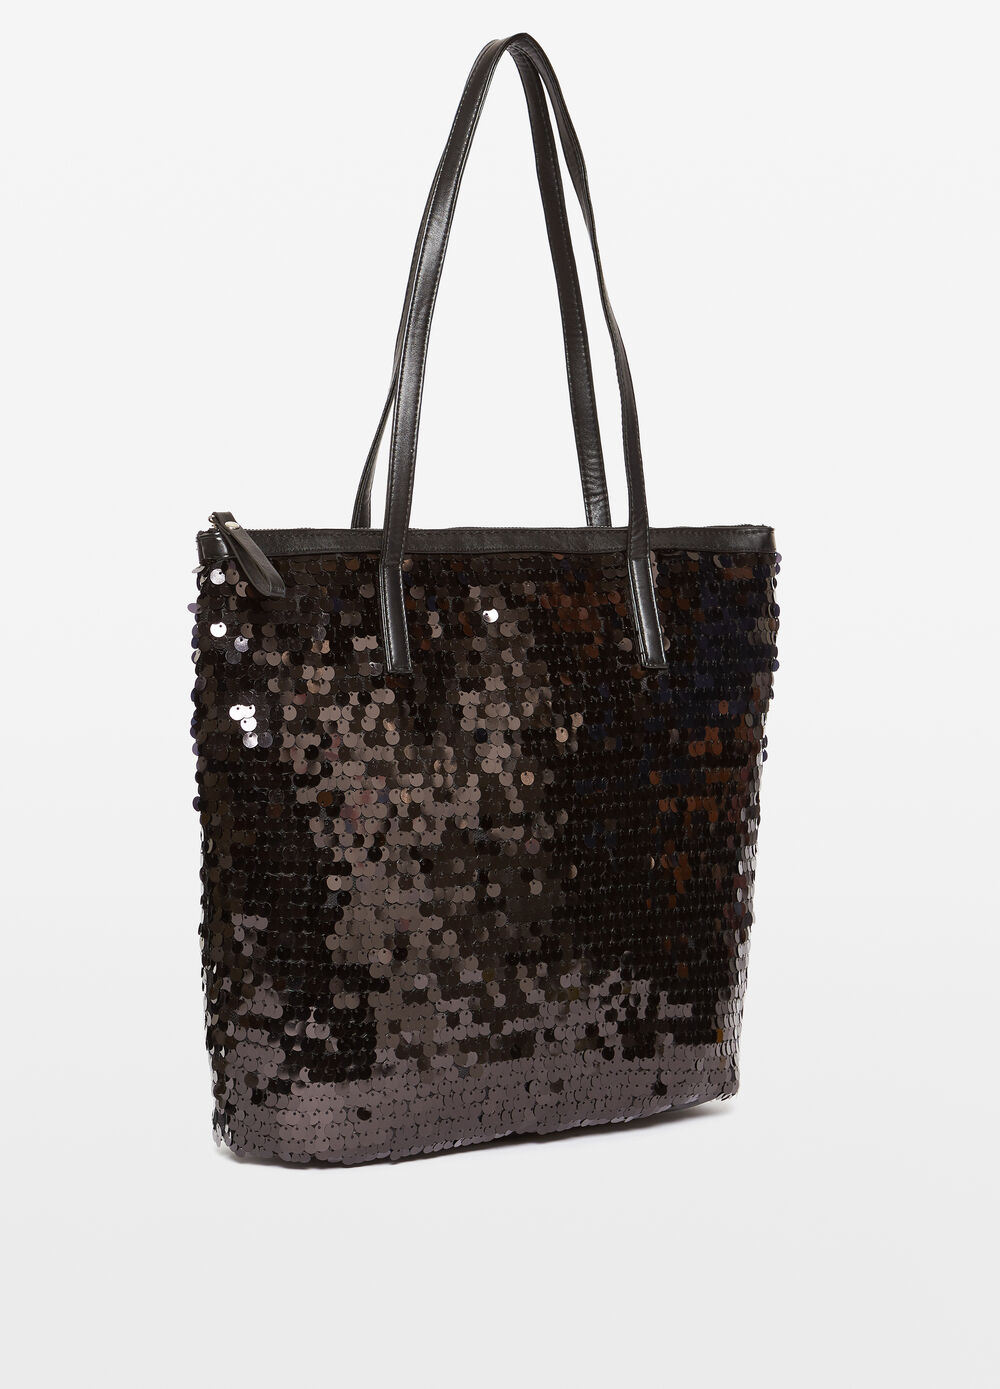 Shopping bag with sequins